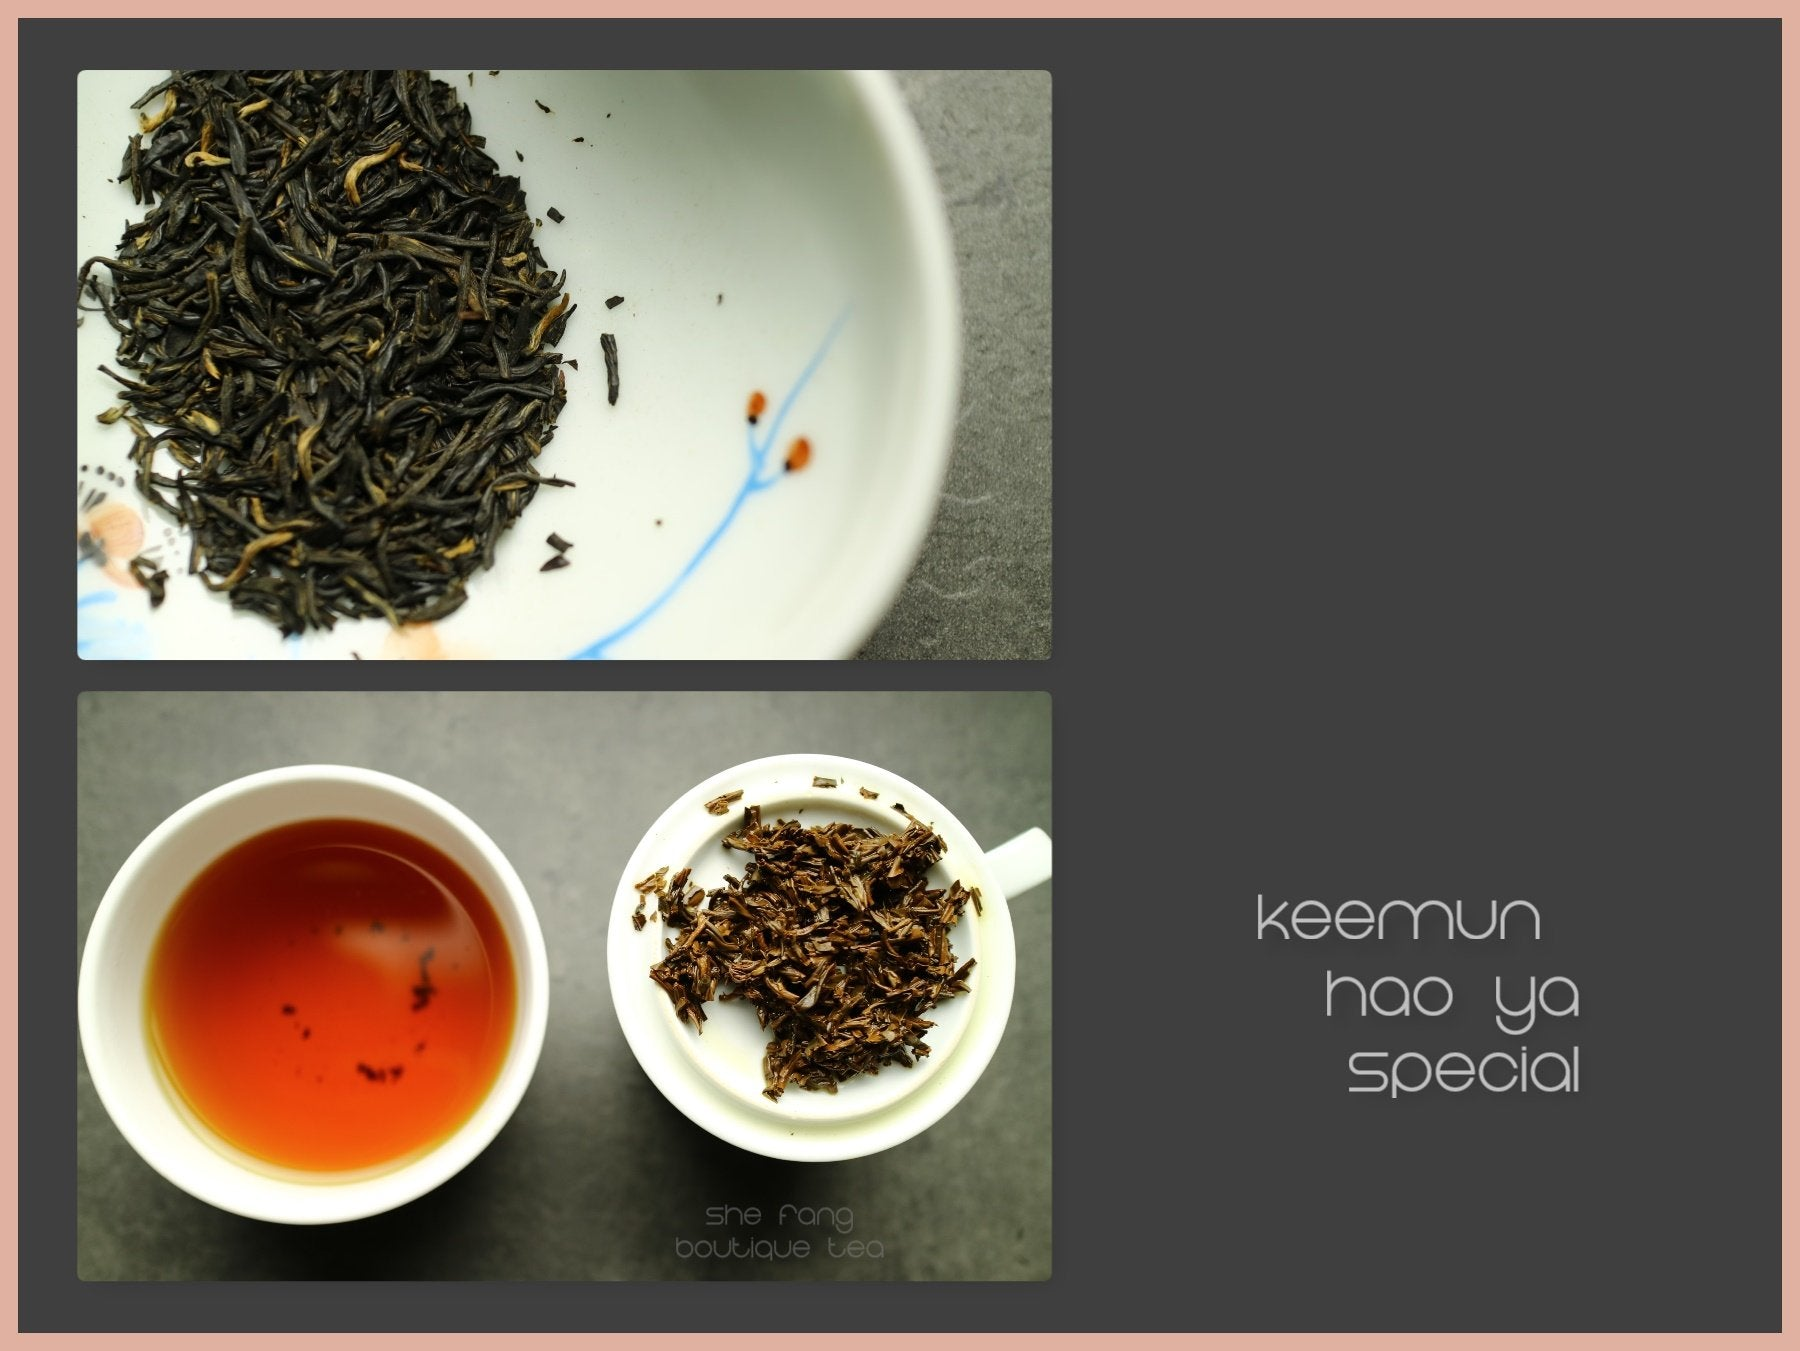 Tea sourcing - Batch 235 - Keemun Hao Ya Special